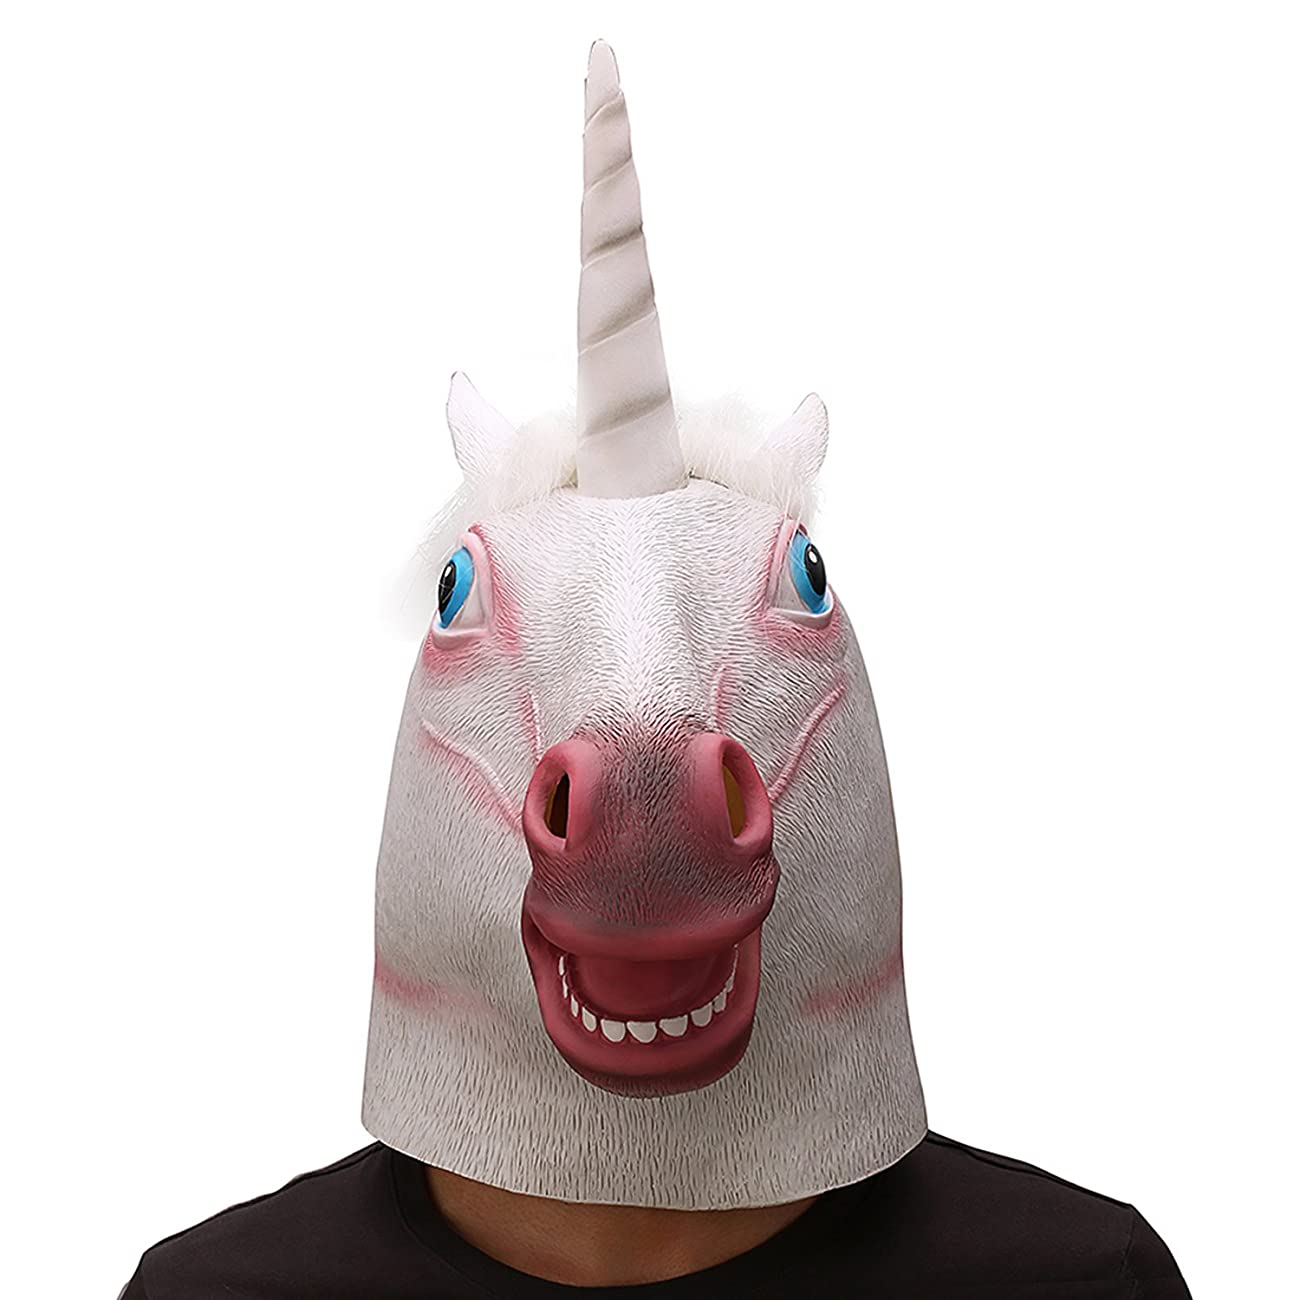 Ylovetoys Unicorn Head Mask Halloween Costume Party Novelty Latex Animal Mask 1